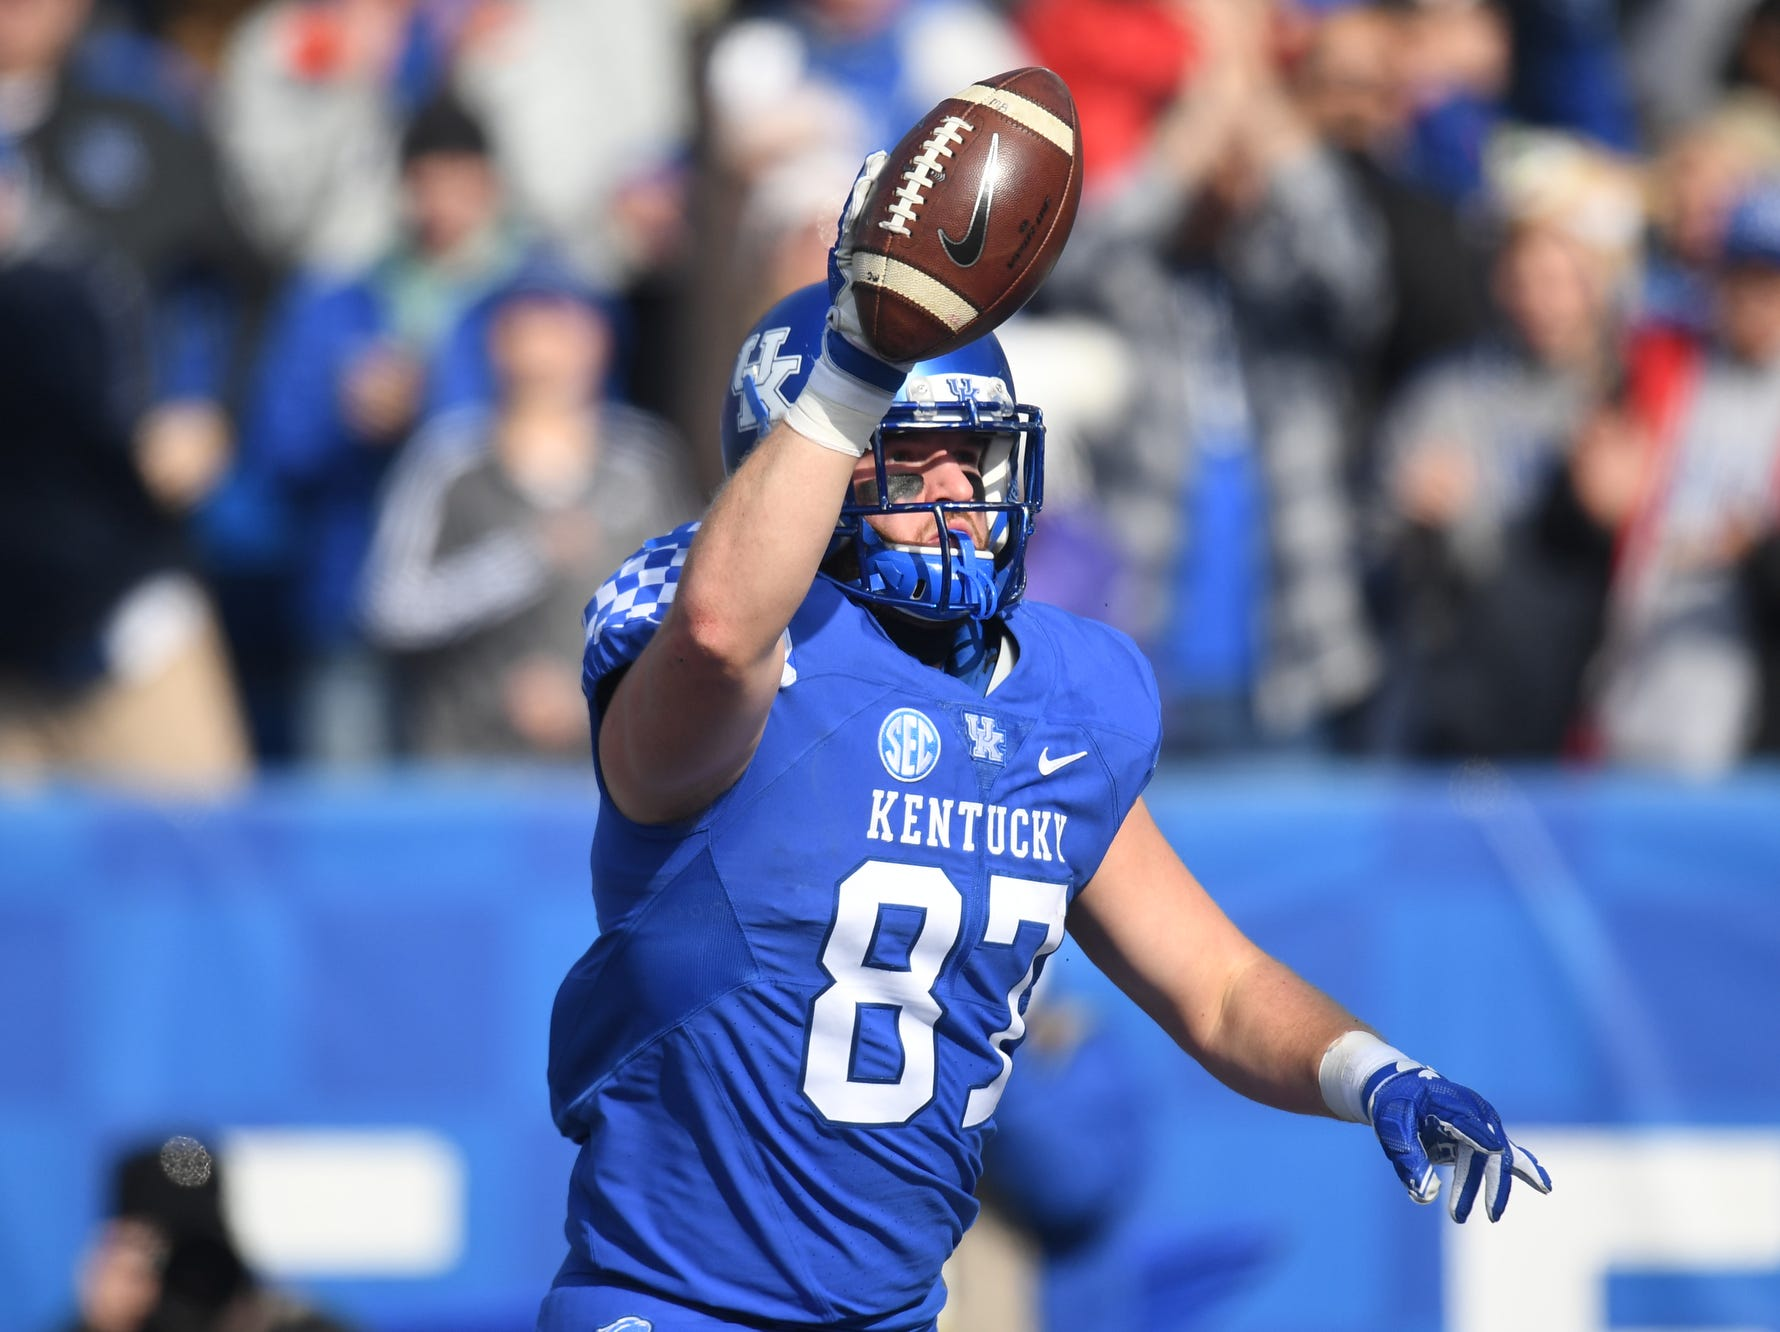 UK TE C.J. Conrad celebrates a touchdown reception during the University of Kentucky football game against Middle Tennessee at Kroger Field in Lexington, Kentucky on Saturday, November 17, 2018.